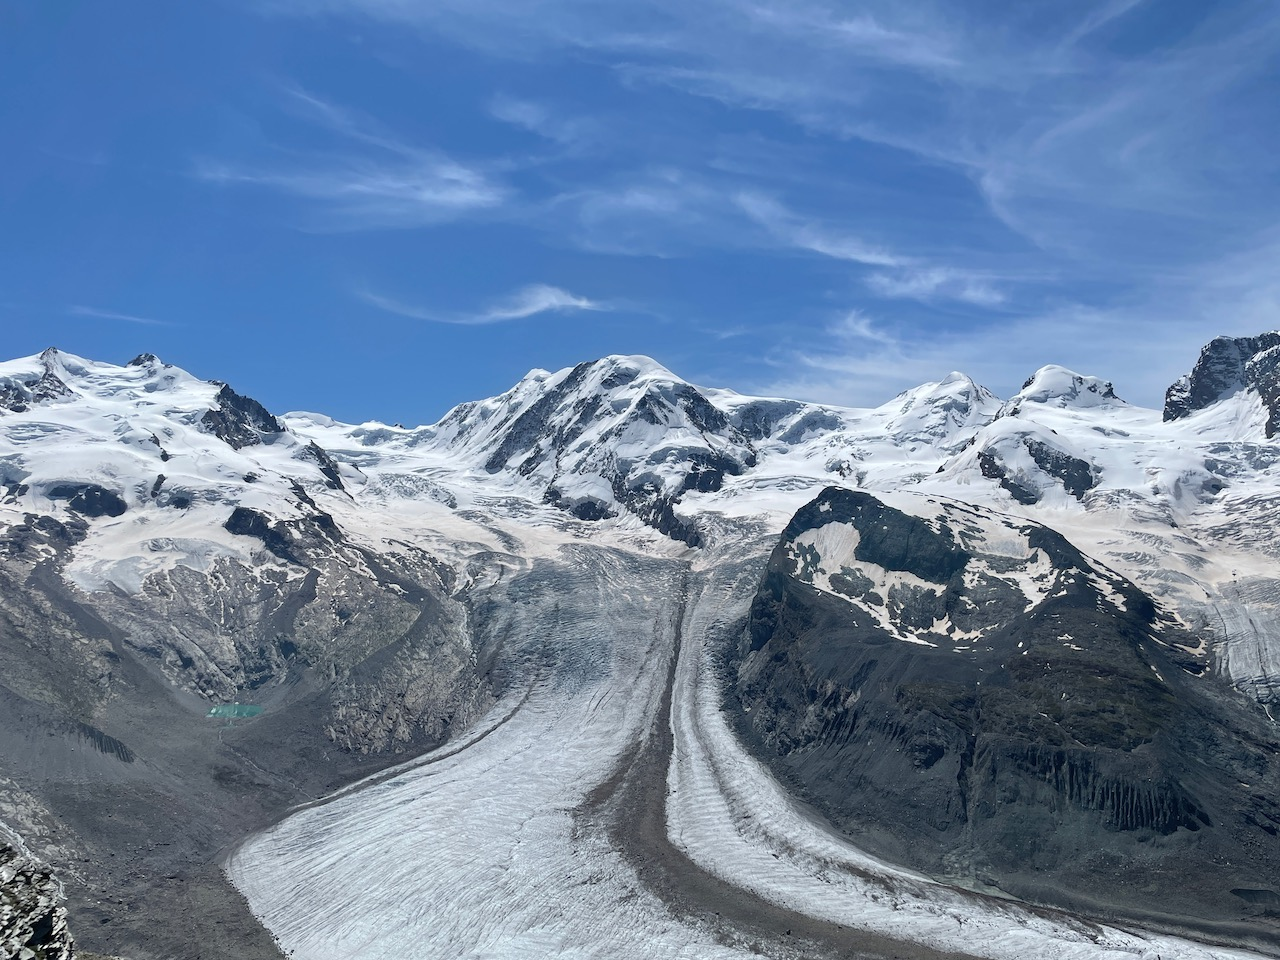 At the top of the Gornergrat looking at the Glacier during summer